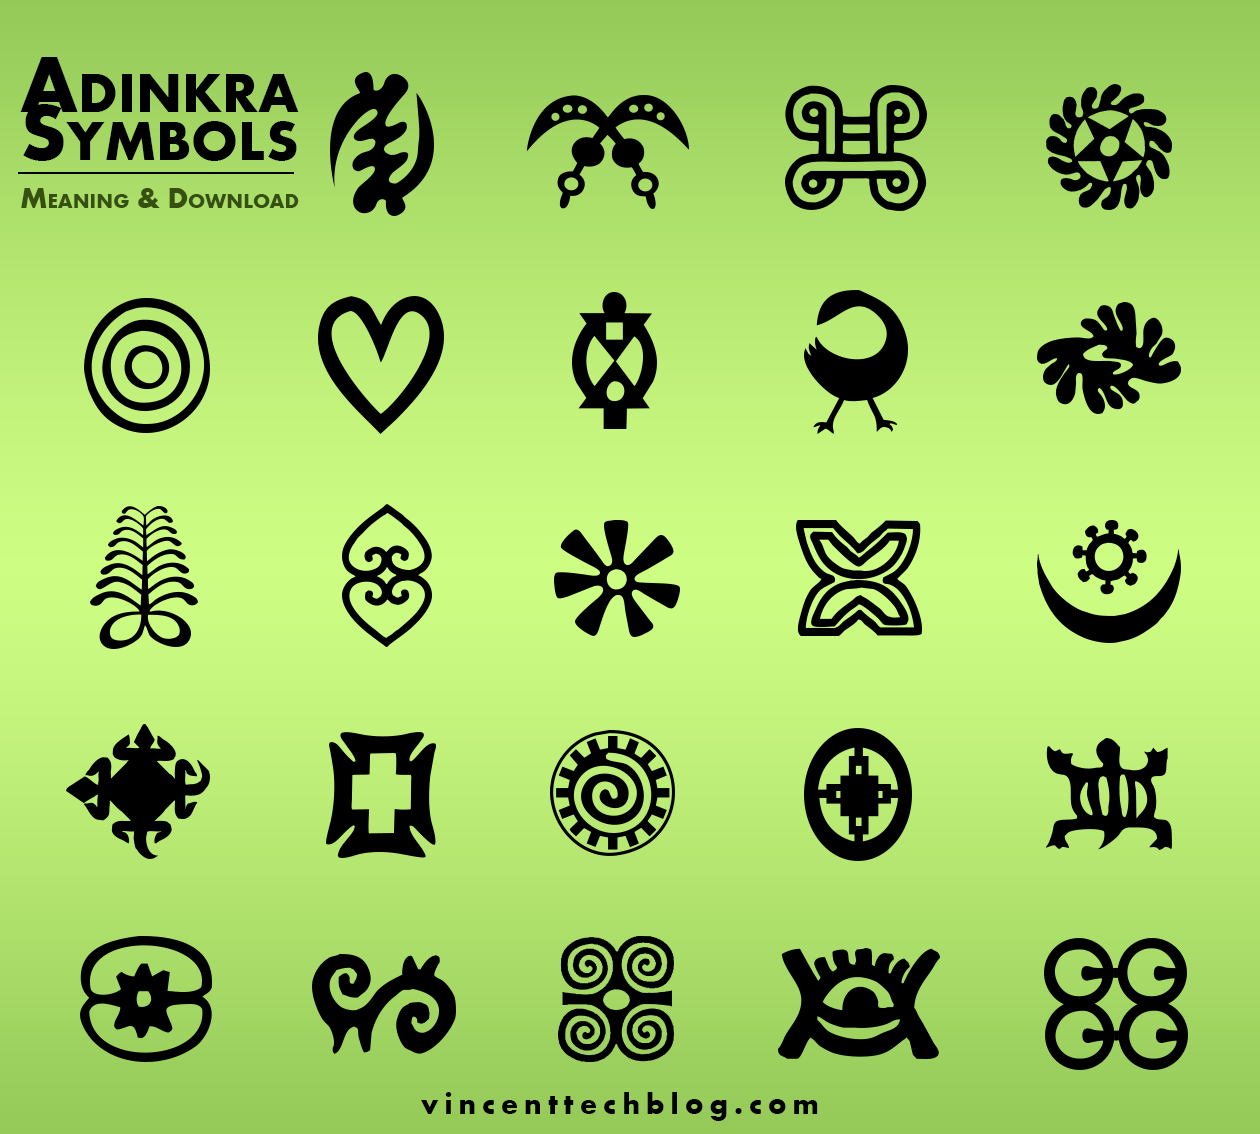 Adinkra symbols free download ghanaian symbols brushes shapes adinkra symbols buycottarizona Gallery